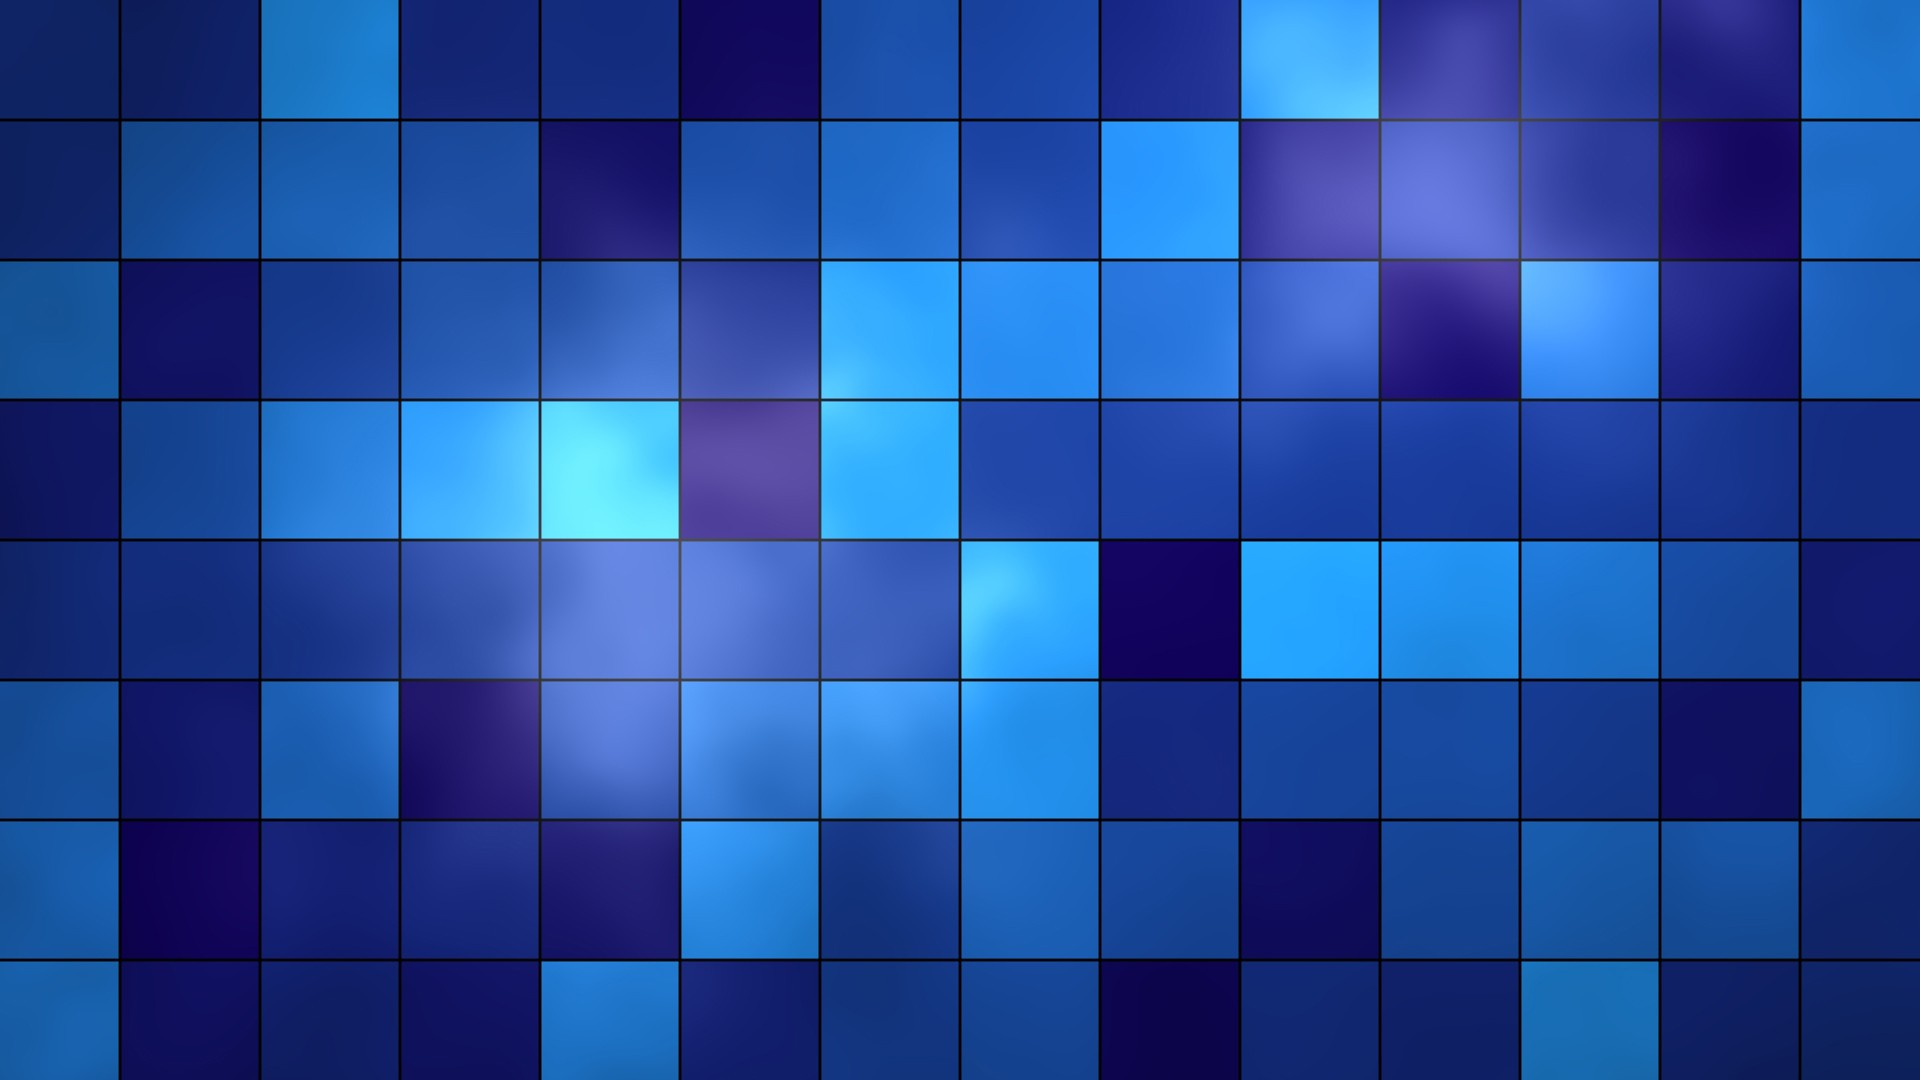 Awesome Blue Wallpapers - WallpaperSafari